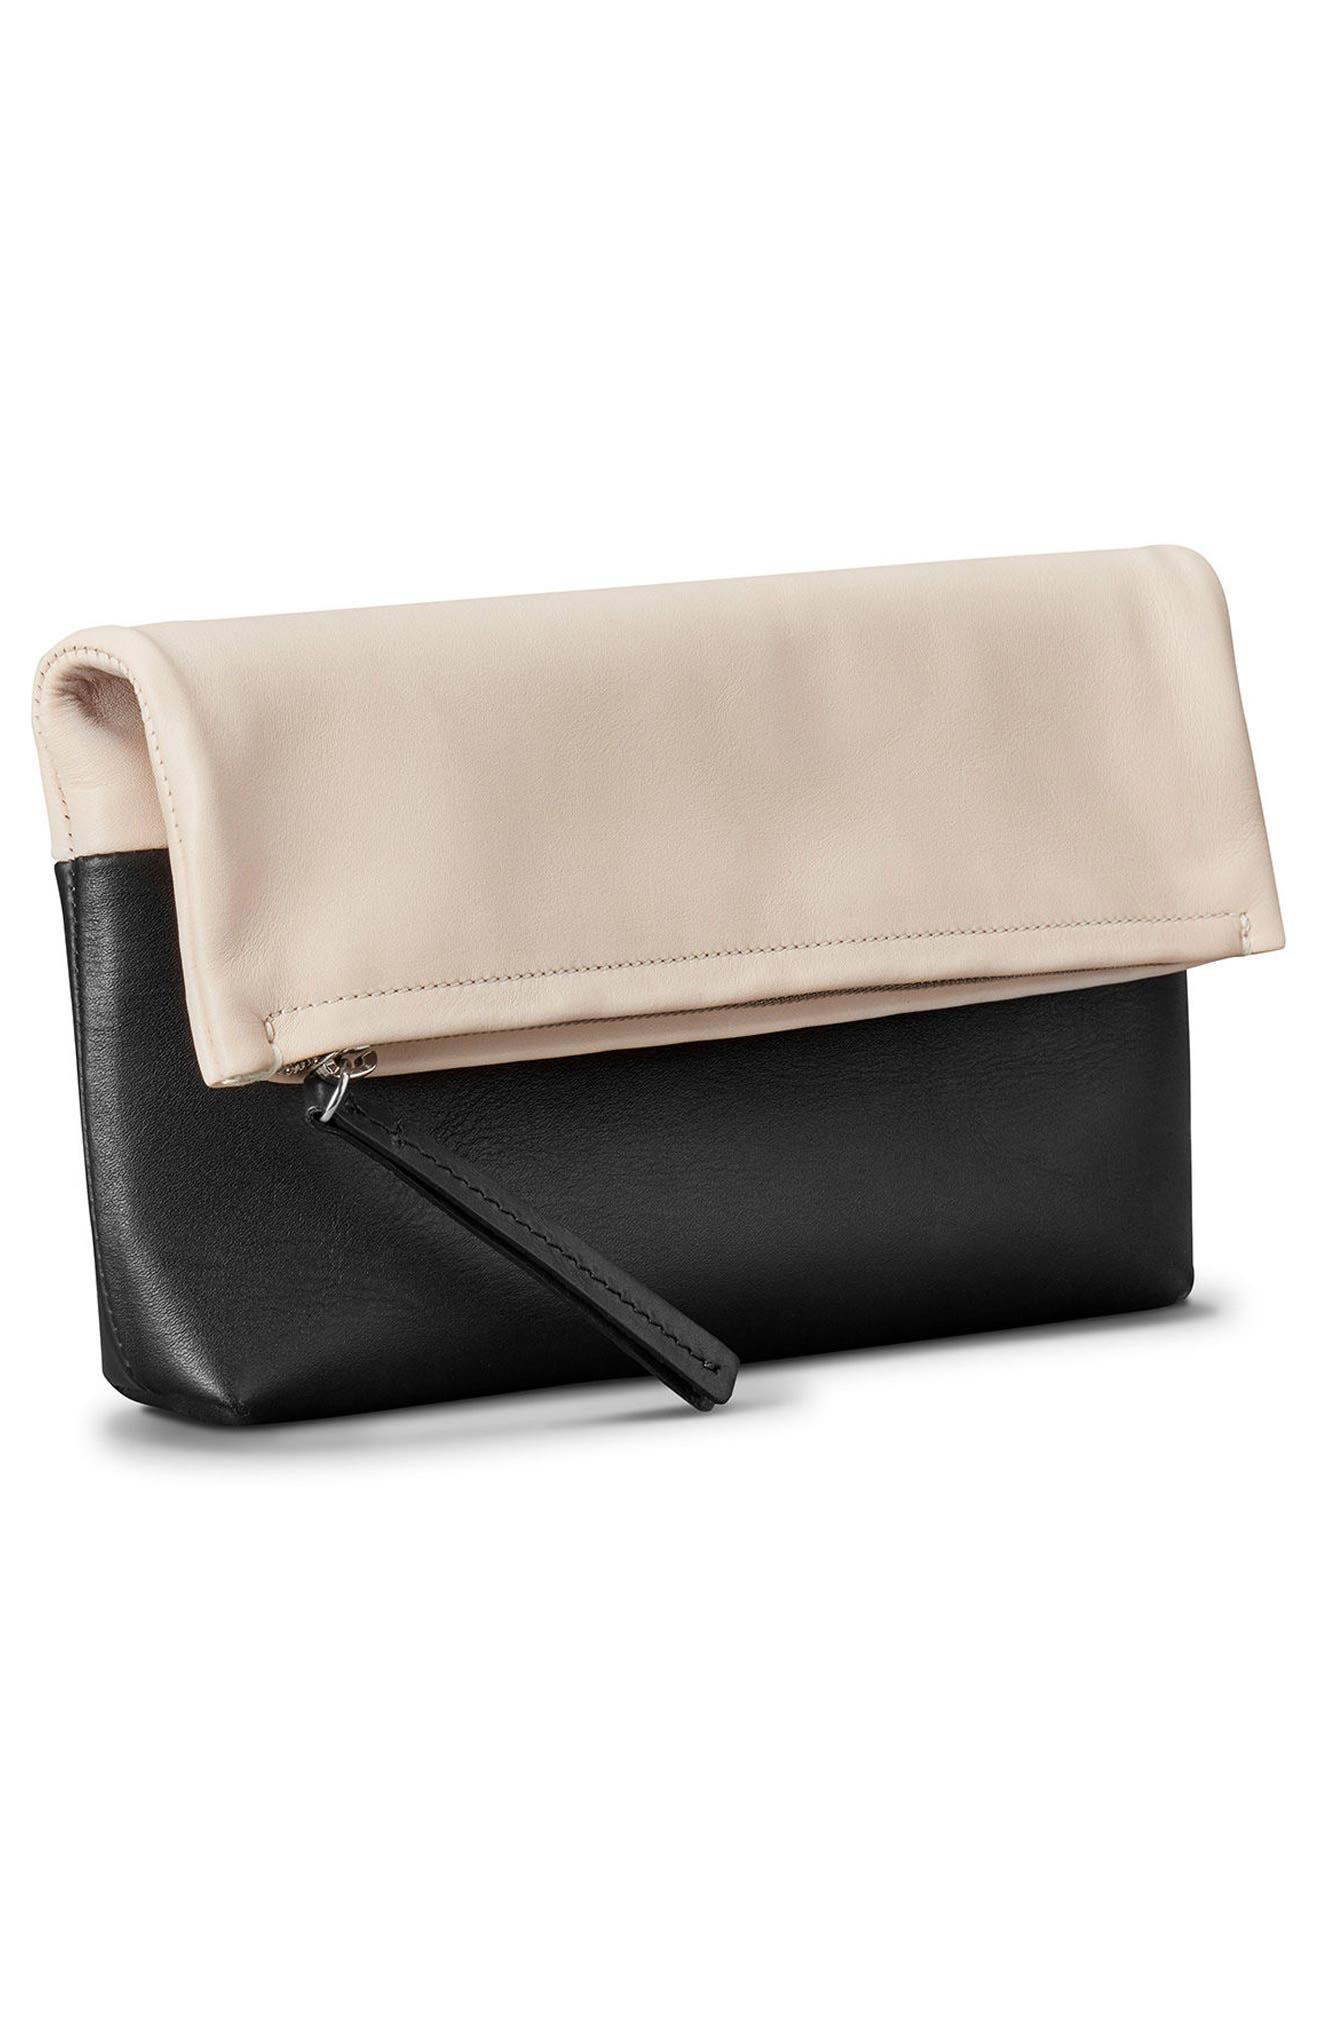 Birdy Leather Foldover Clutch,                             Alternate thumbnail 4, color,                             Soft Blush Black